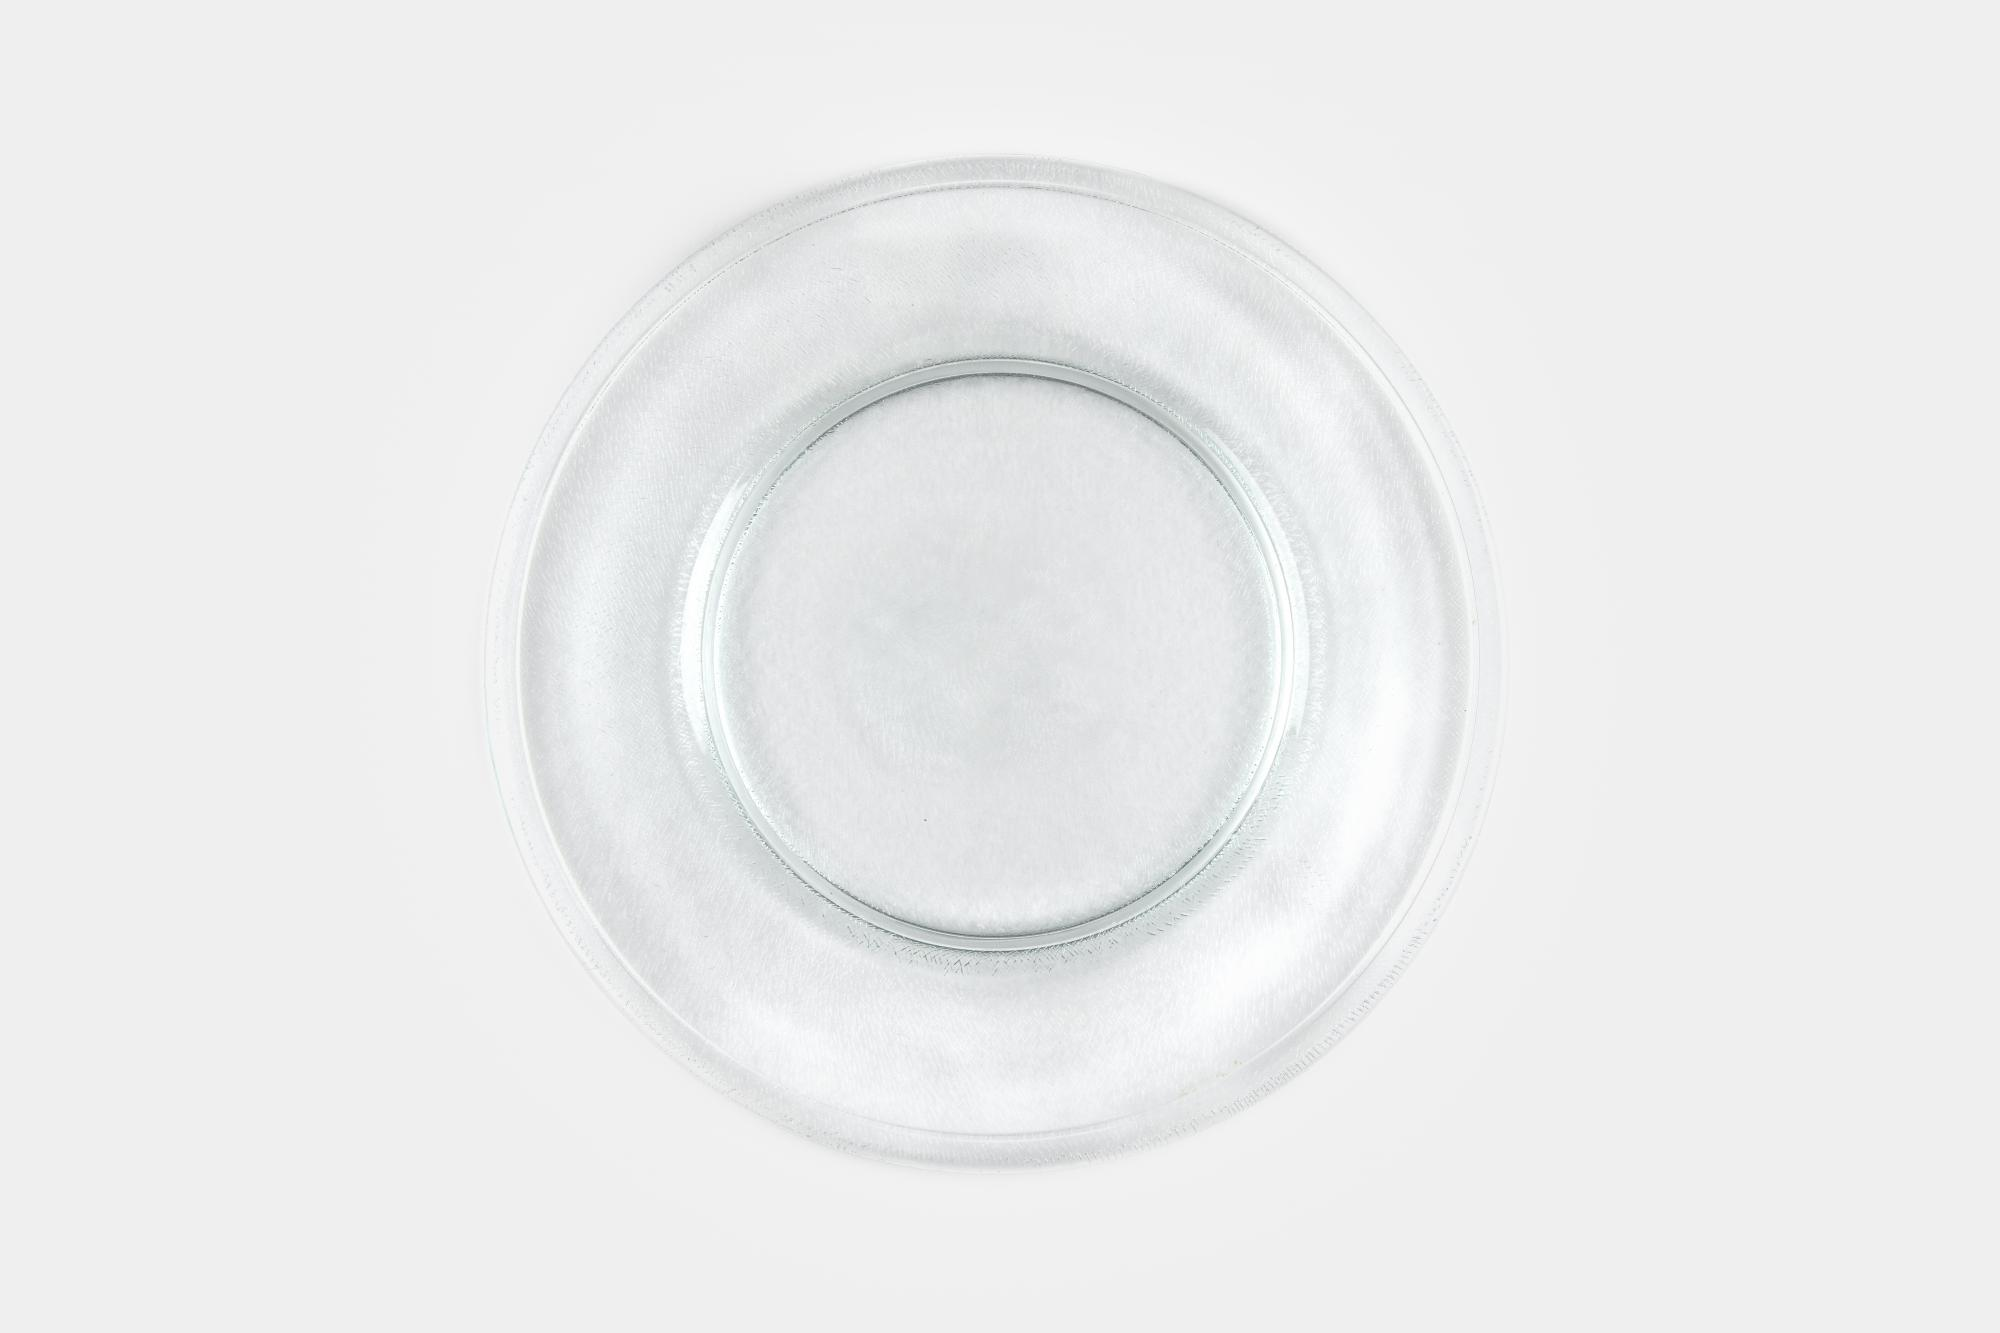 Glass charger - Image 0